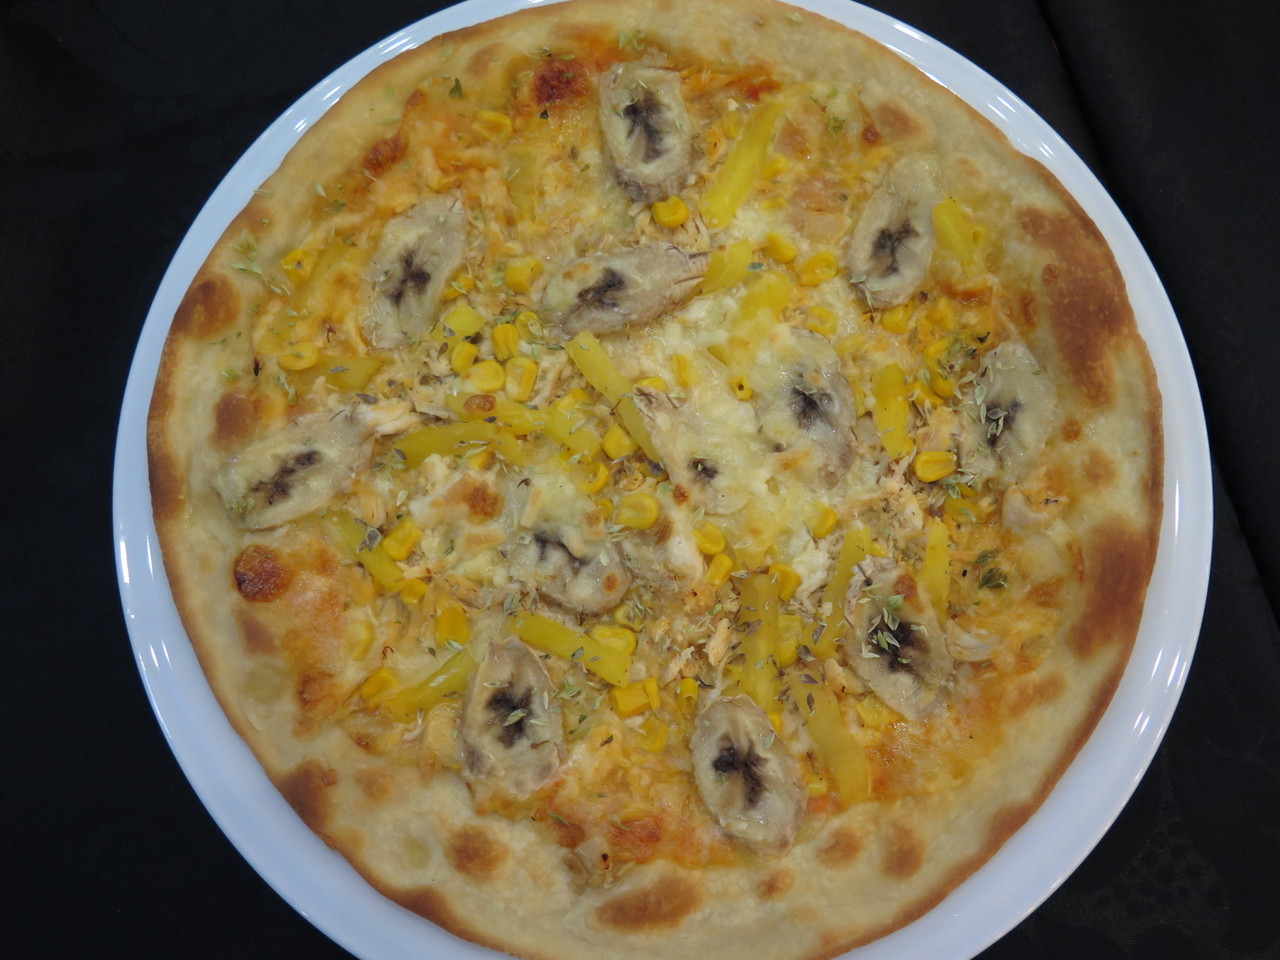 Pizza Tropicale